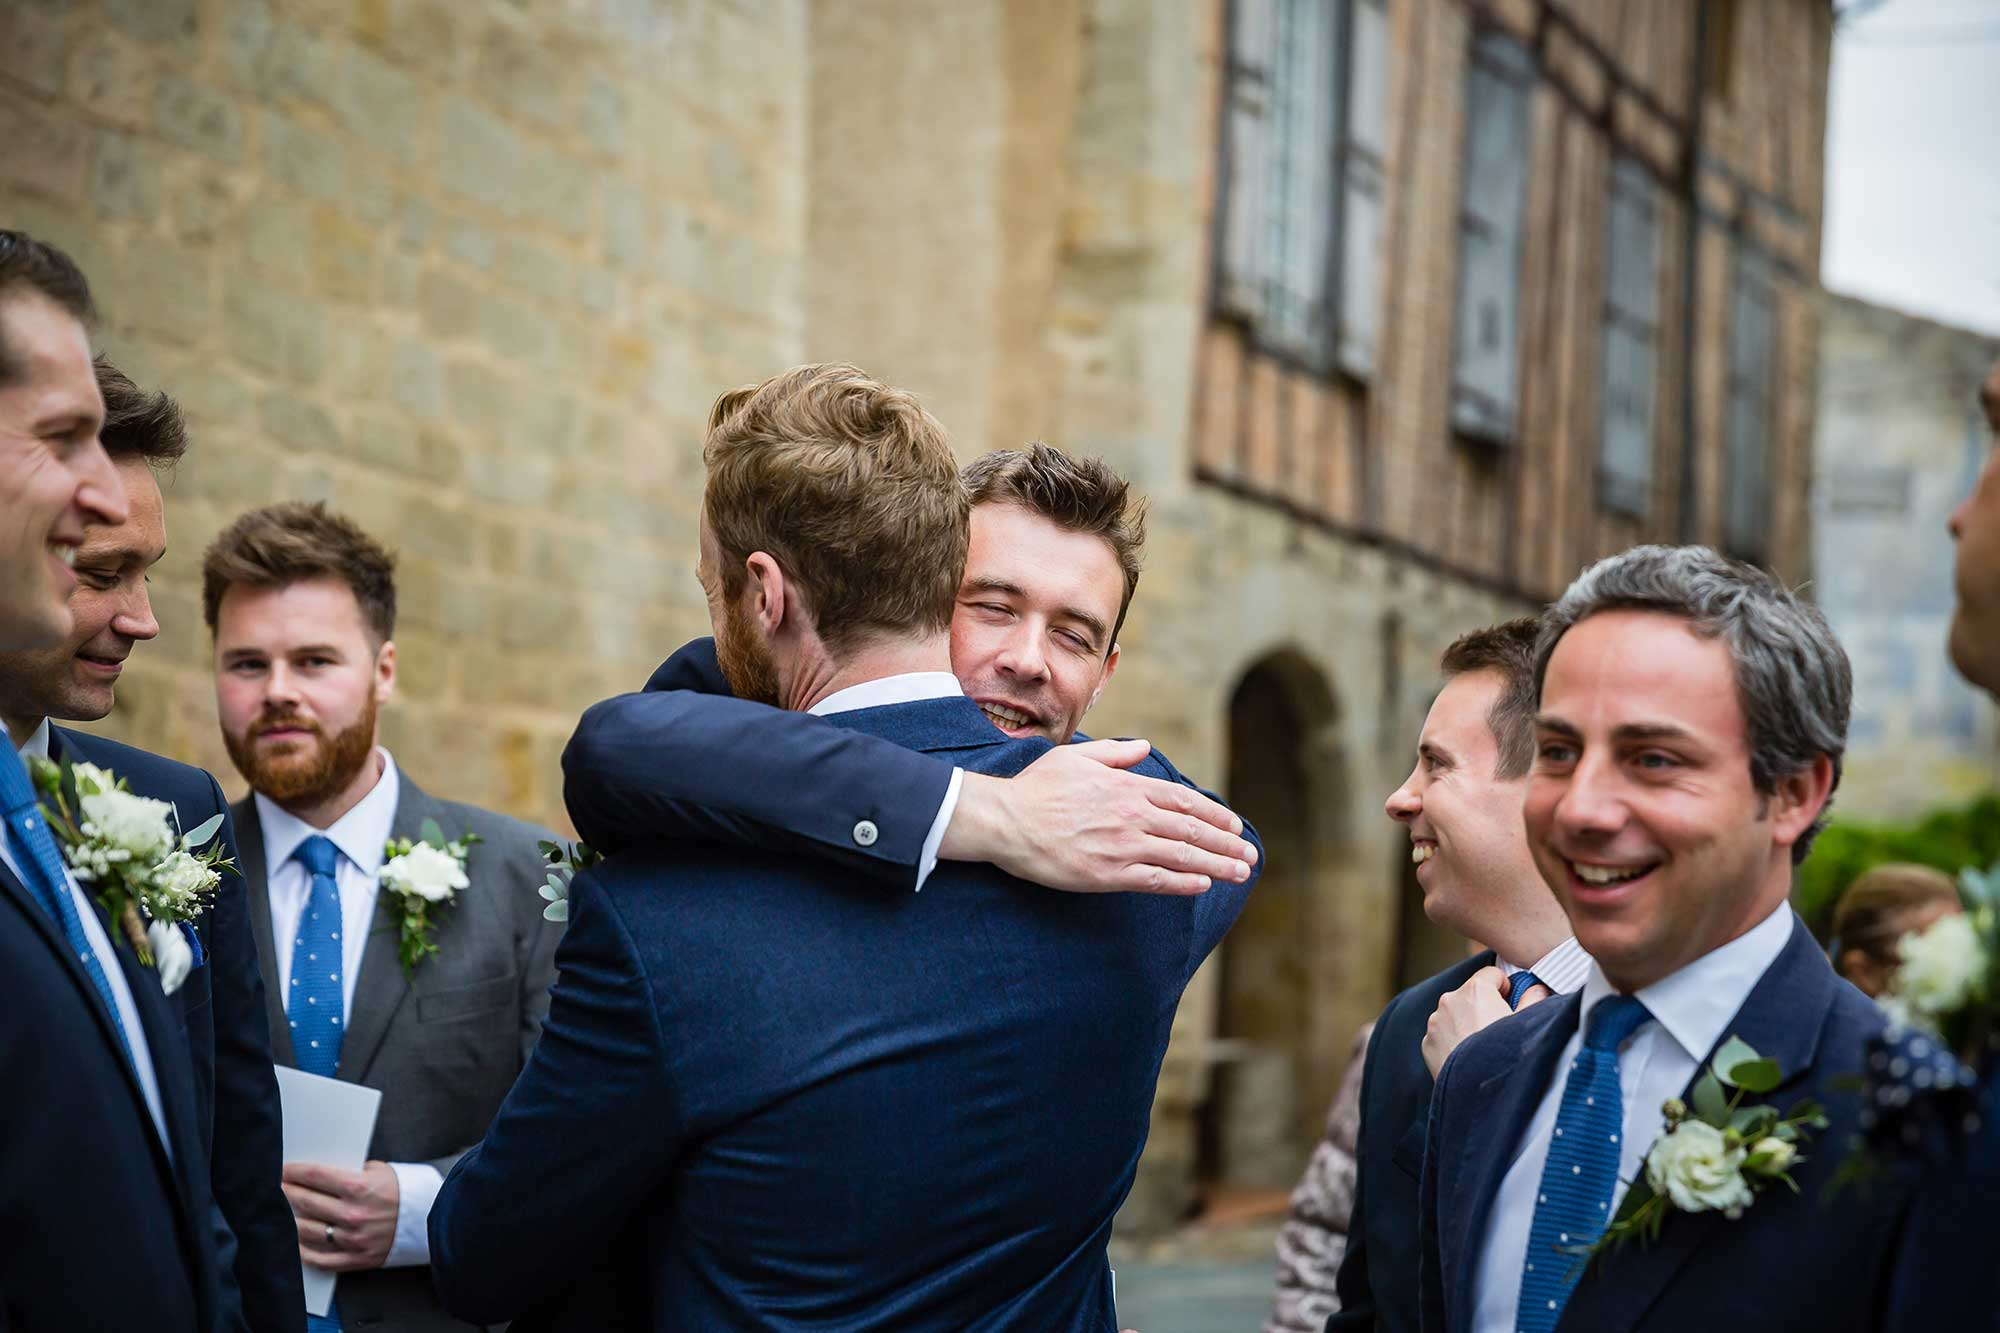 man hugs the groom